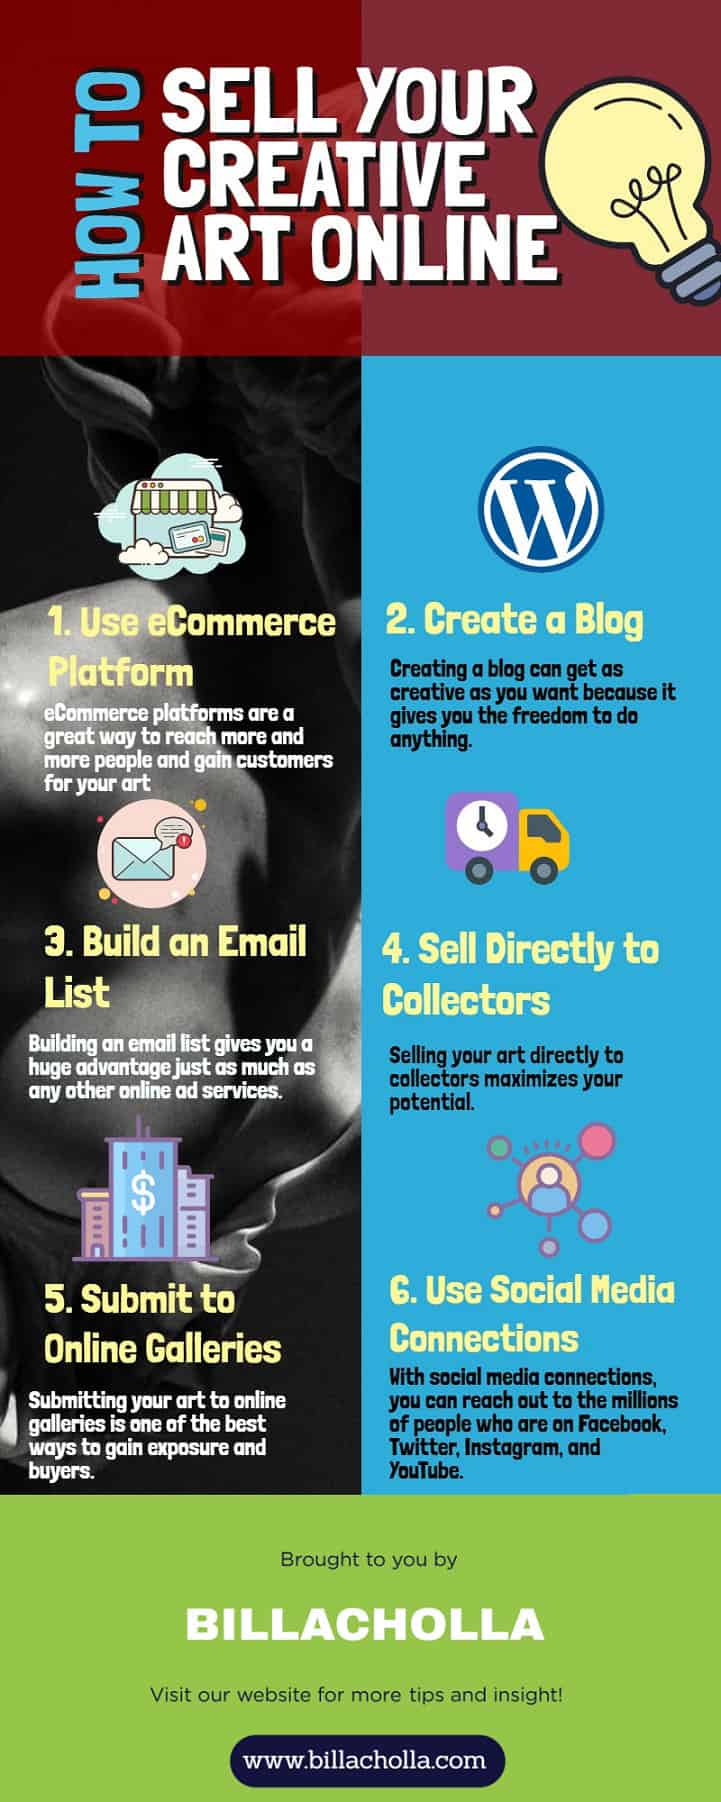 Infographic About Selling Creative Art Online and Make Money.